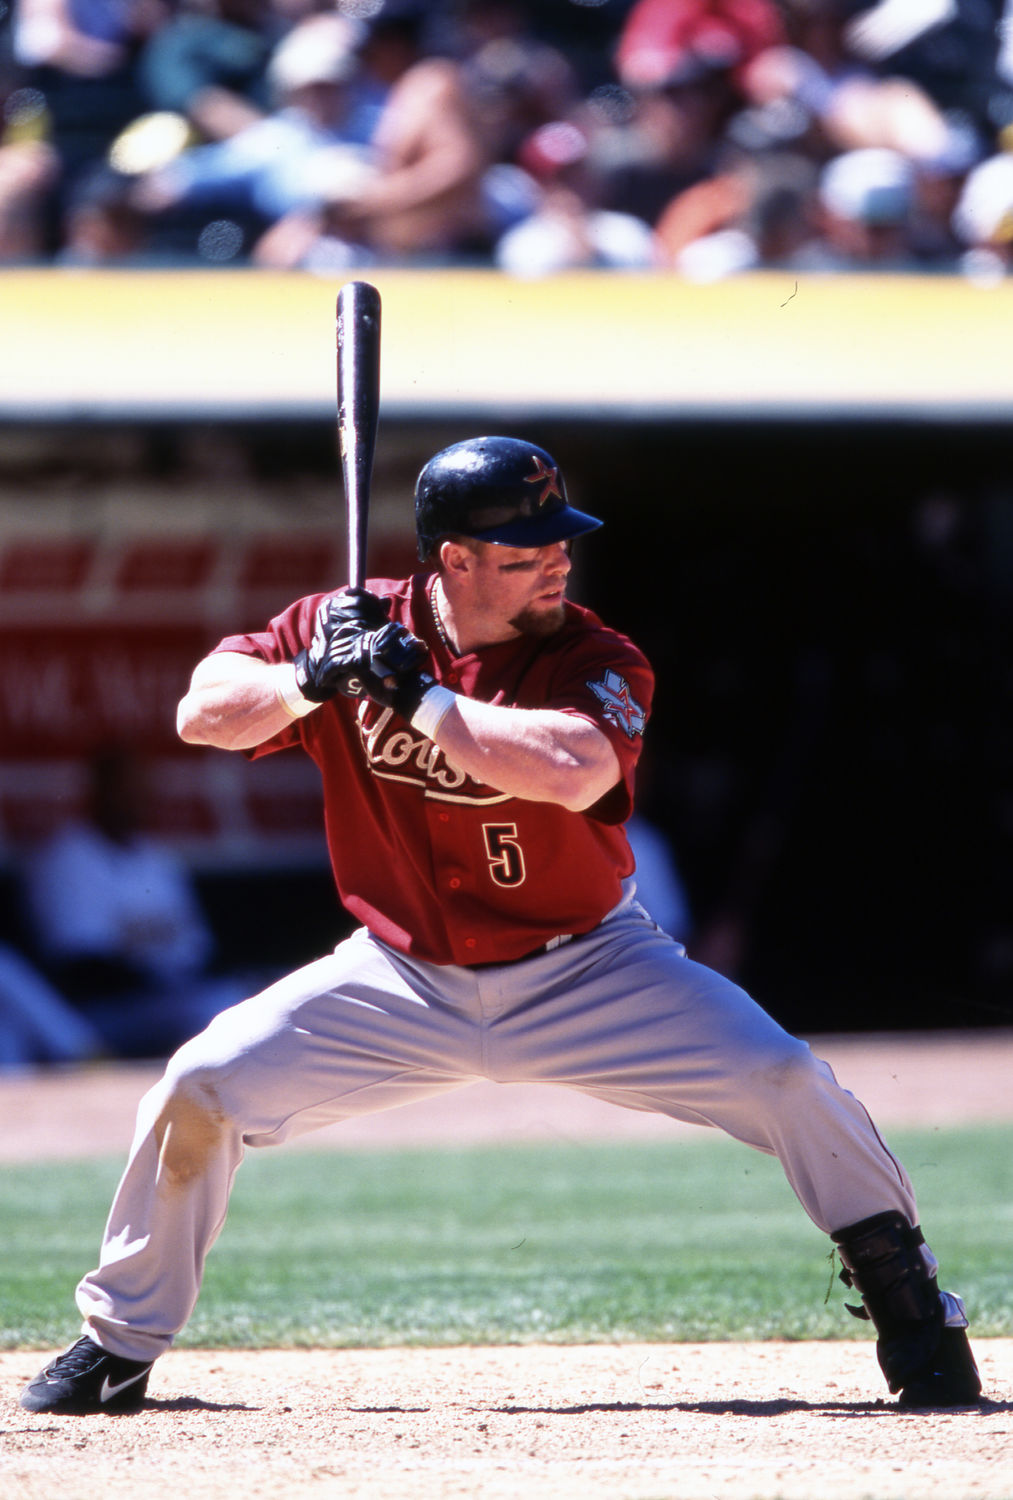 Jeff Bagwell Bagwell Jeff Baseball Hall of Fame